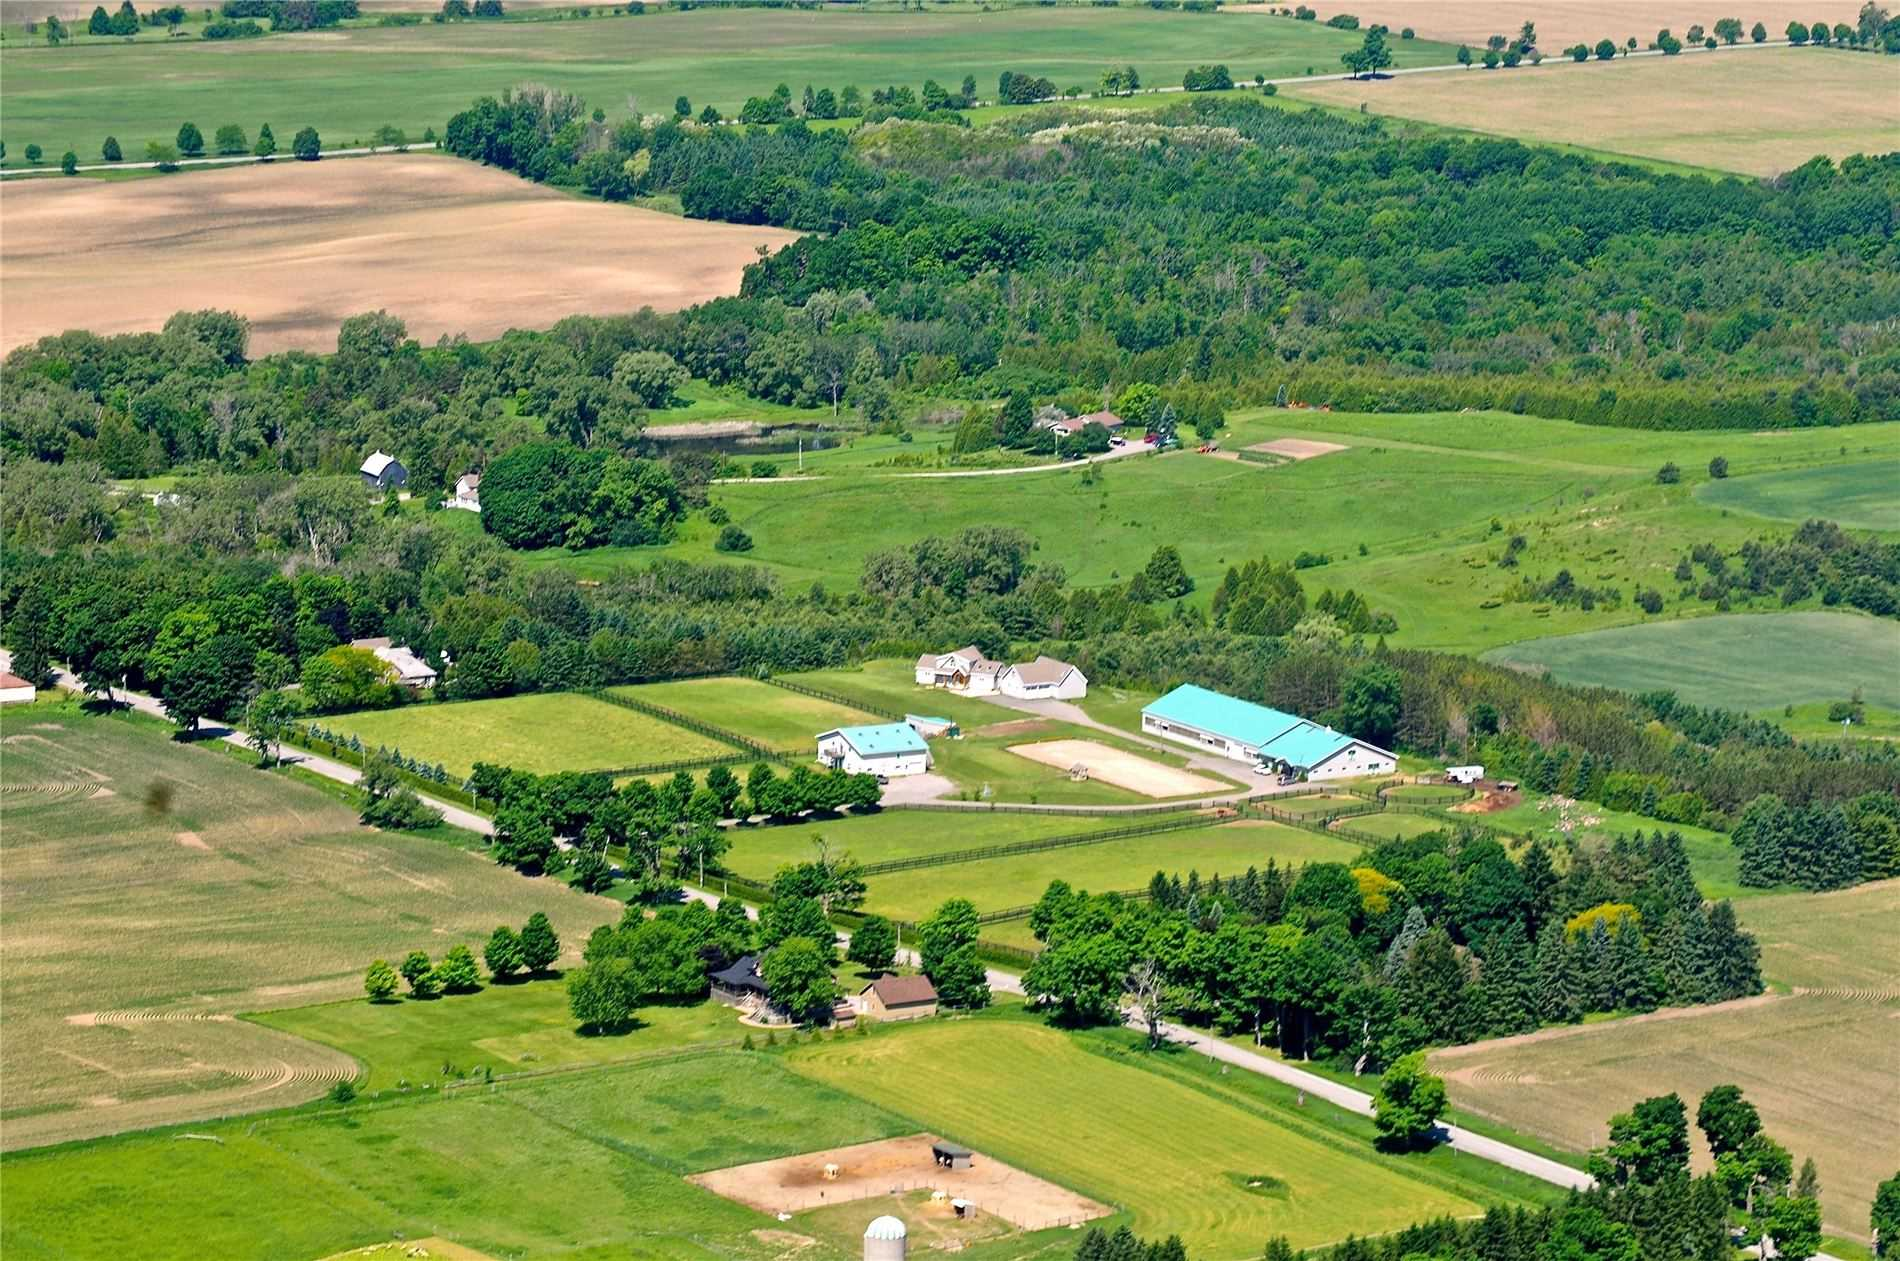 Only 10 Minutes From The 407, This Property Offers The Best Of Both Worlds With A Rural Lifestyle And Access To Toronto In Under An Hour. Situated Behind A Towering 8' Hedge & Roadside Gates Is An Equestrian Layout Ideal For Both A Private Or Boarding Facility. Impressive Main Dutchmaster's Barn With Arena Includes German Fibre Footing. Second Barn With Additional 8 Stalls, Garage & Spacious Finished Loft. Outdoor Ring With Drainage. Several Paddocks.